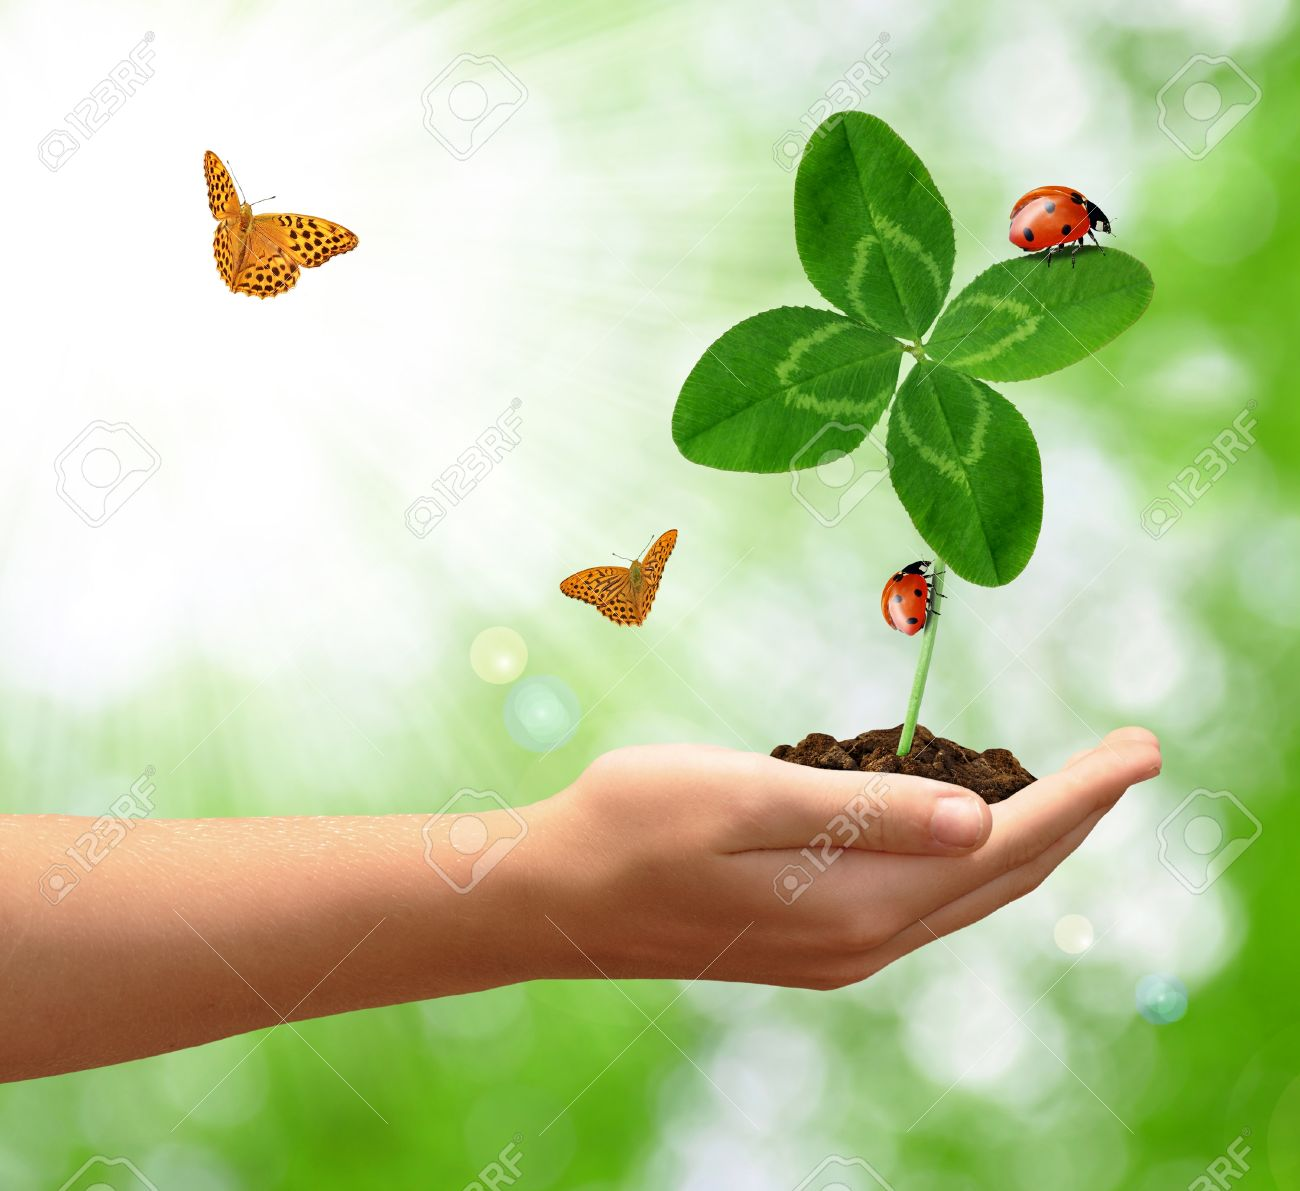 growing green clover with the ladybirds and butterfly - 17285451